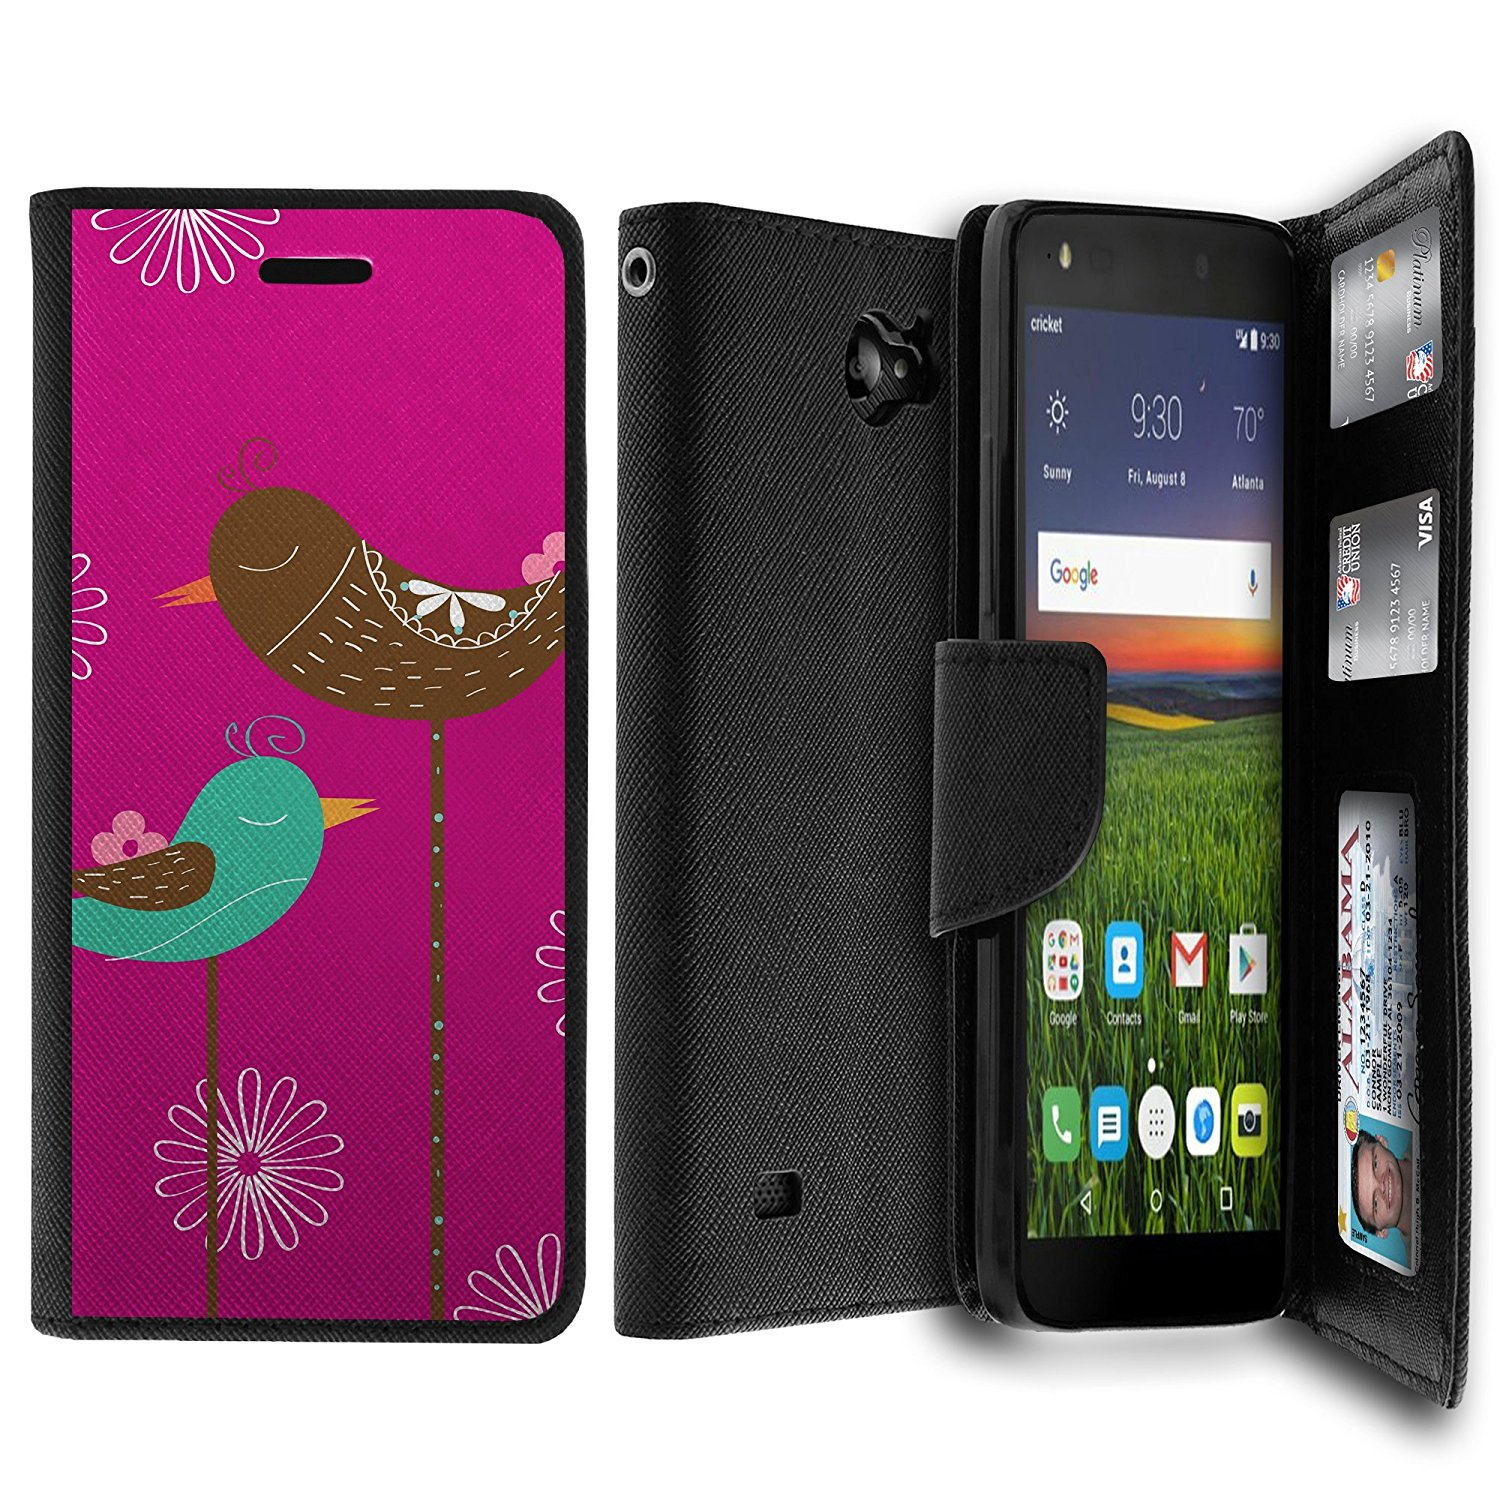 Case for ZTE Majesty Pro Case, Majesty Pro Wallet Case[MAX WALLET] Dual Purpose Wallet Case, Phone Protector and Wallet Style Design Card ID Slot Custom Print Design By Untouchble - Resting Birds